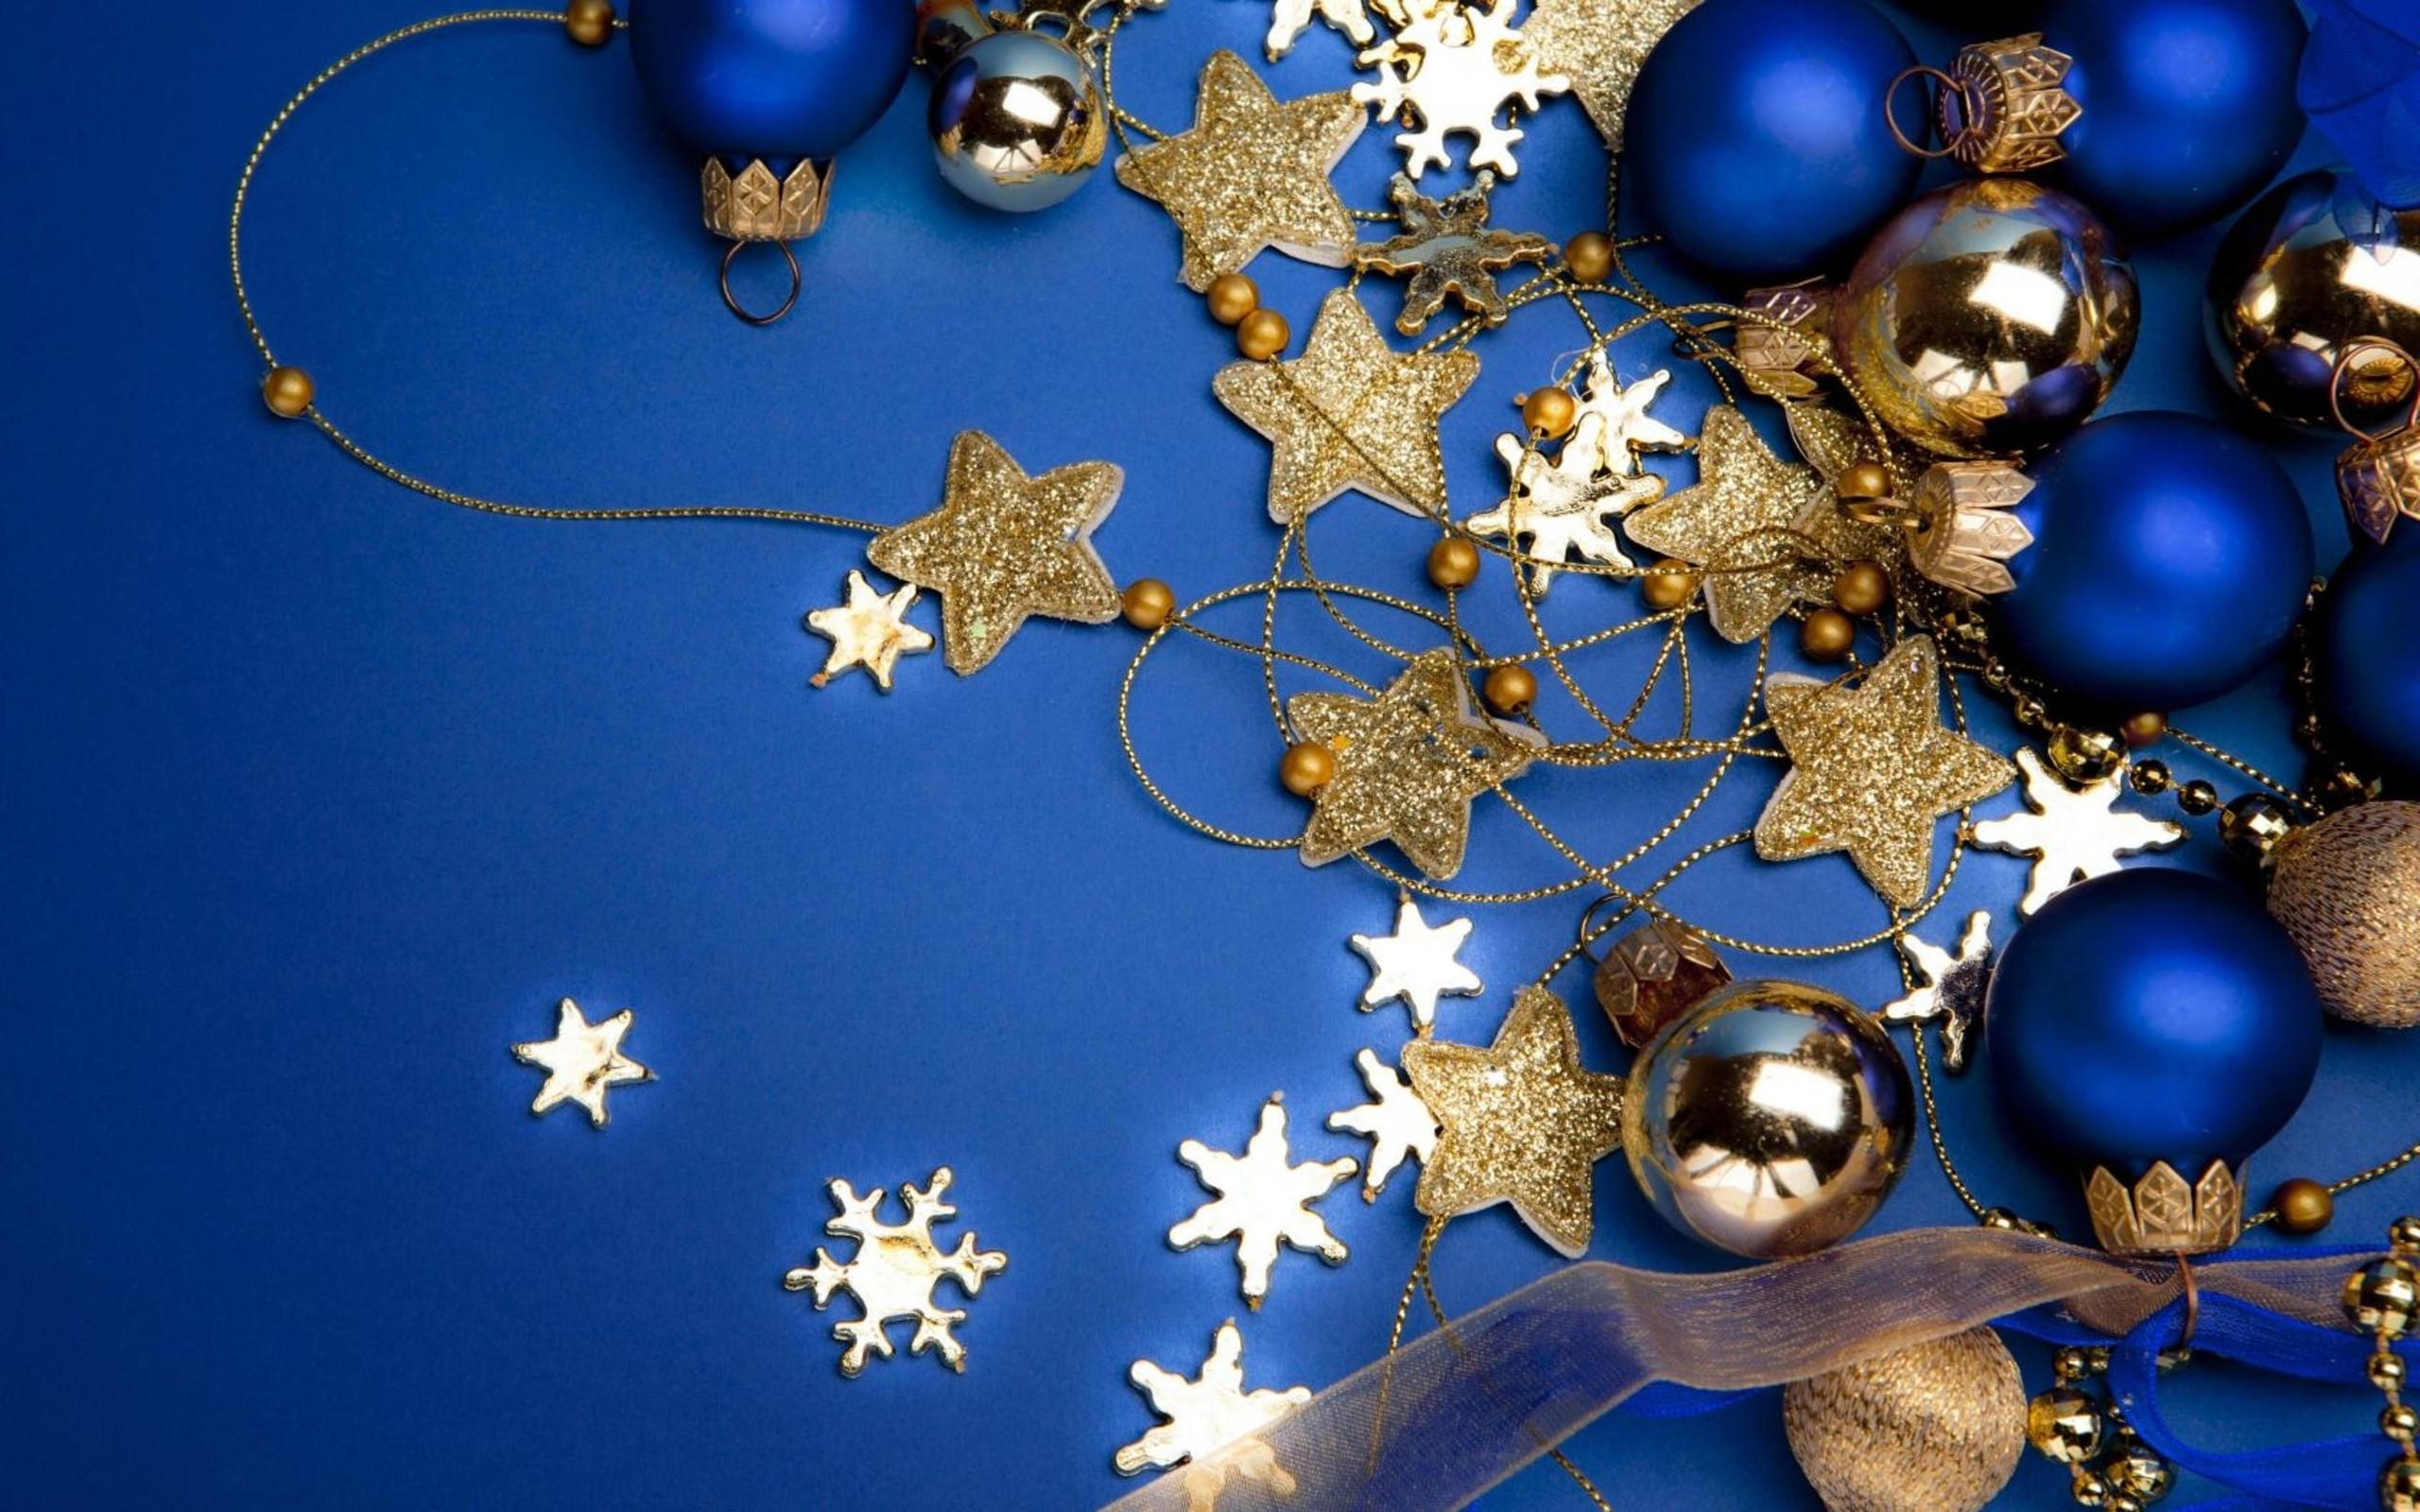 Christmas star wallpaper pictures